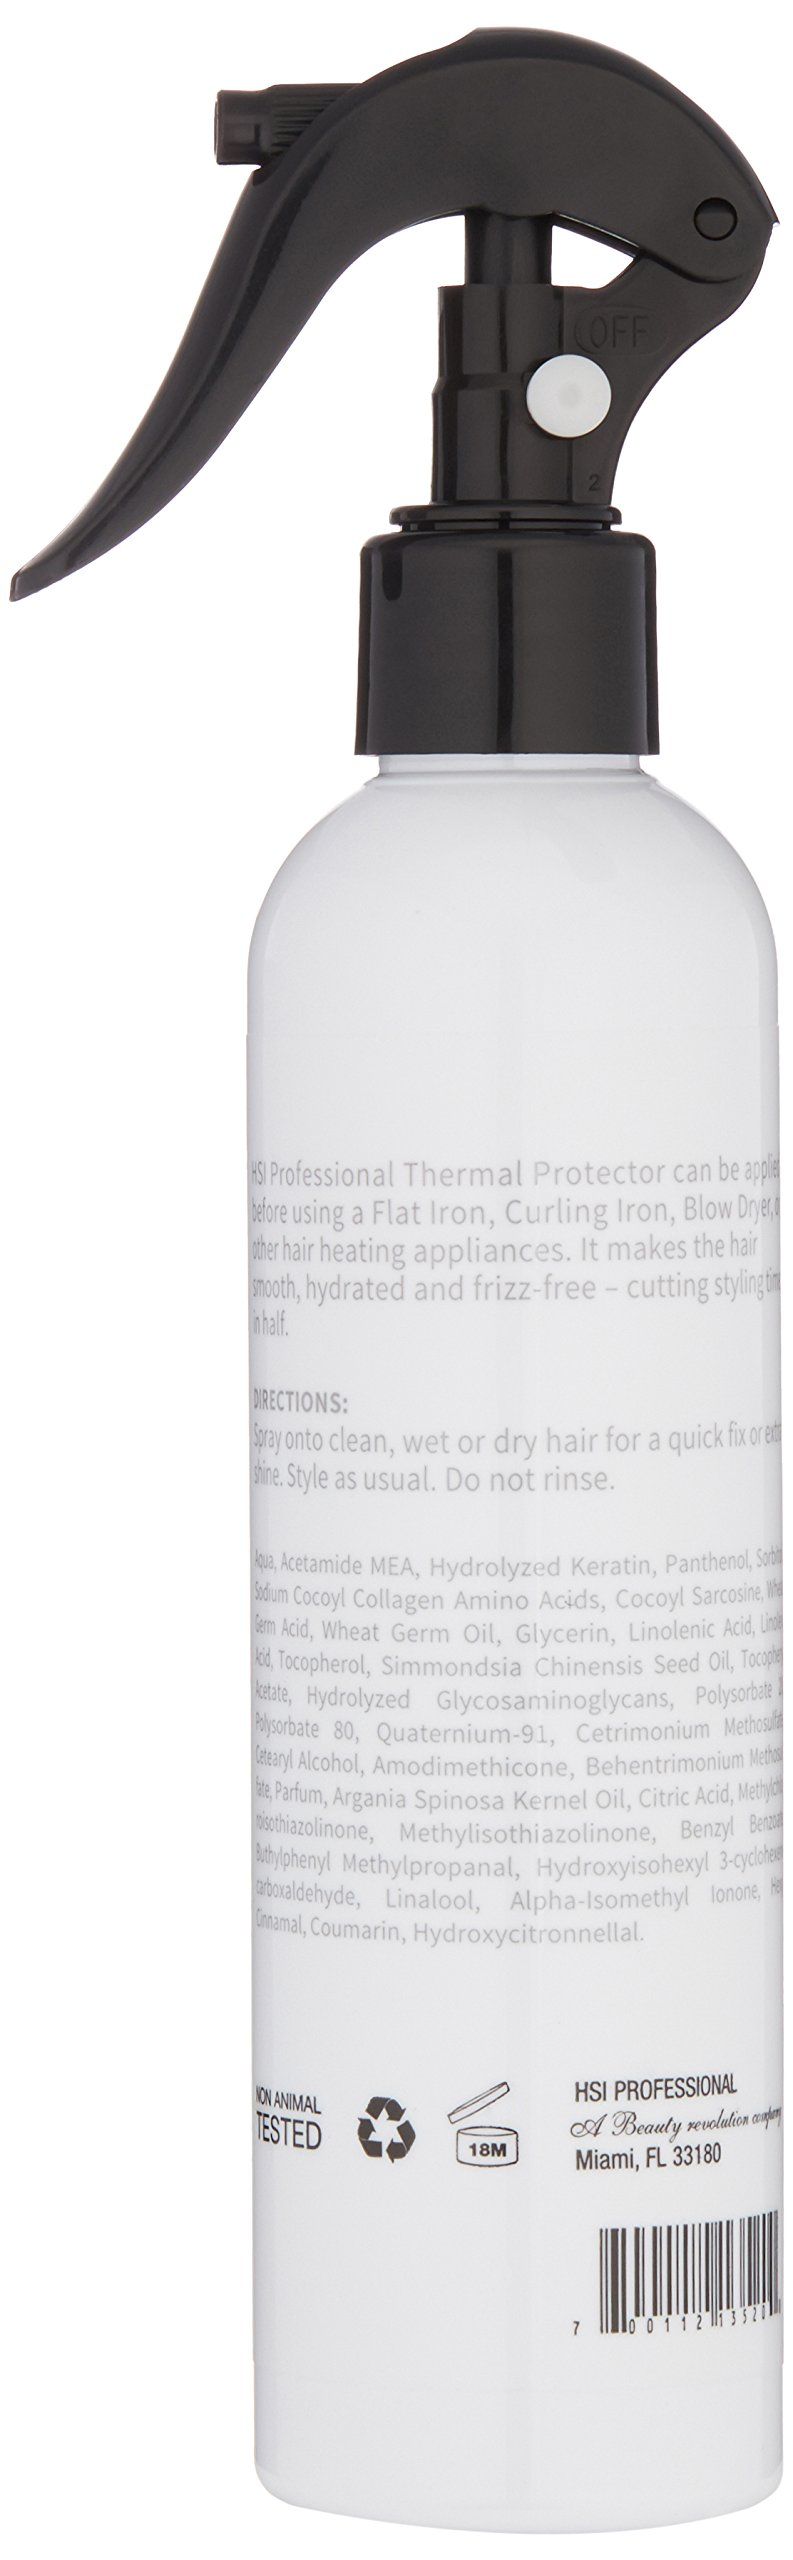 HSI PROFESSIONAL Argan Oil Heat Protector  Protect up to 450º F from Flat Irons & Hot Blow Dry   Sulfate Free, Prevents Damage & Breakage   Made in the USA   8oz, Packaging May Vary by HSI PROFESSIONAL (Image #2)